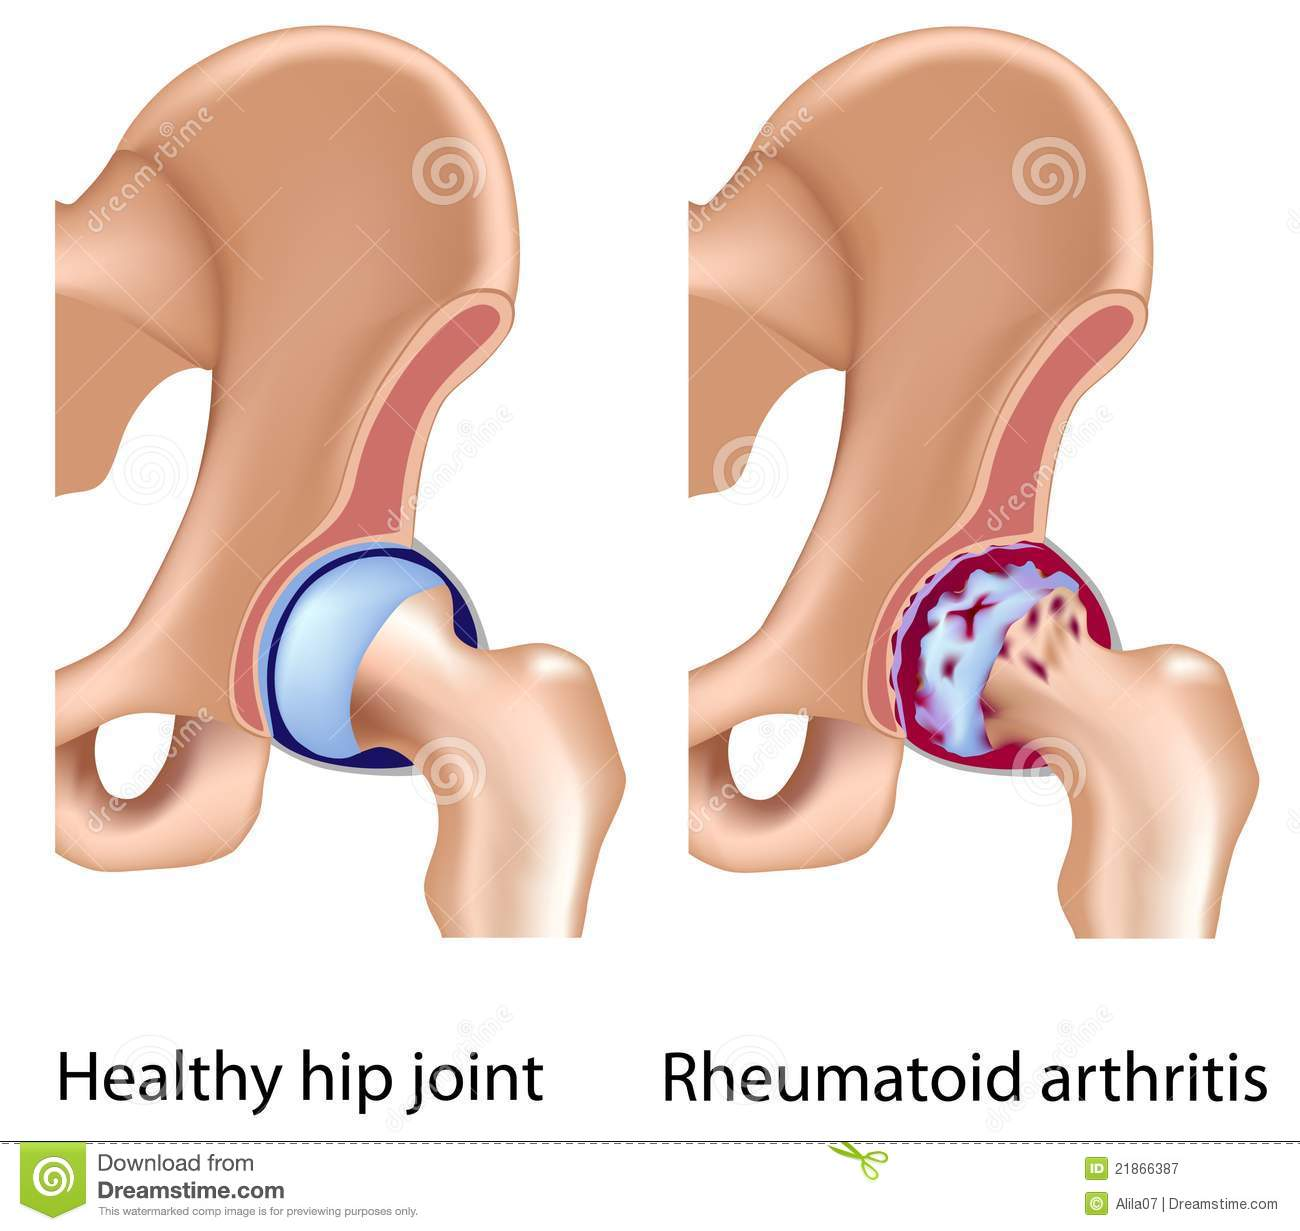 Rheumatoid Arthritis Of Hip Joint Stock Vector - Illustration of ...